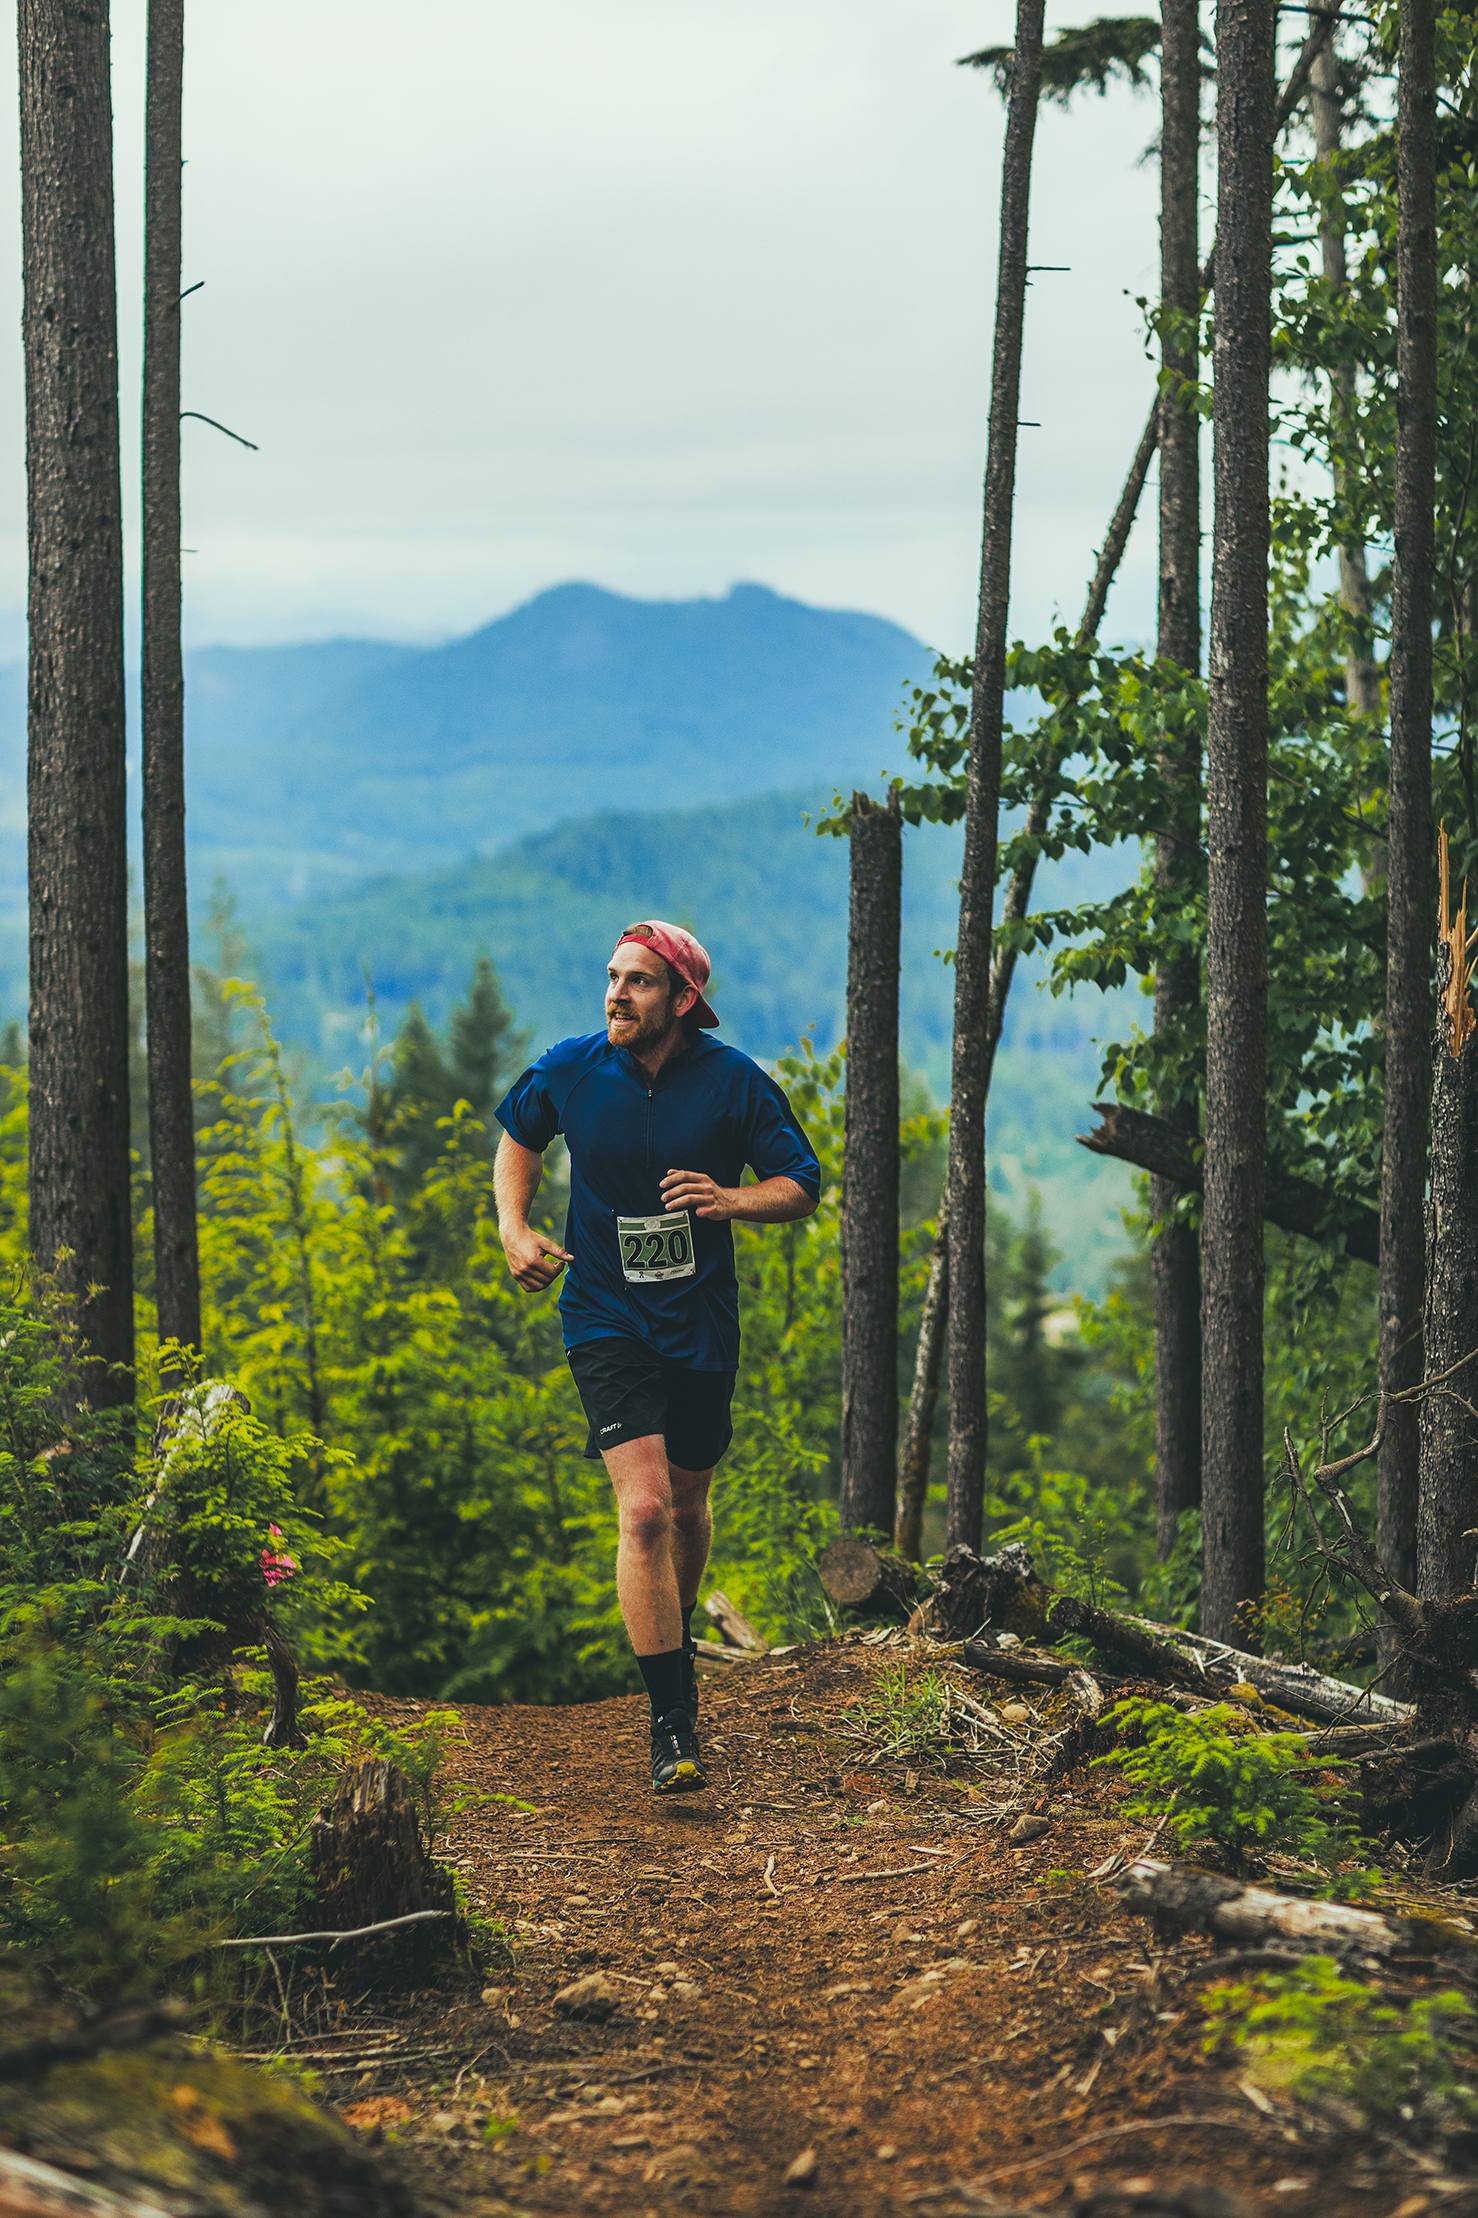 Fraser Valley Trail Races - Bear Mountain - IMG_1638 by Brice Ferre Studio - Vancouver Portrait Adventure and Athlete Photographer.jpg